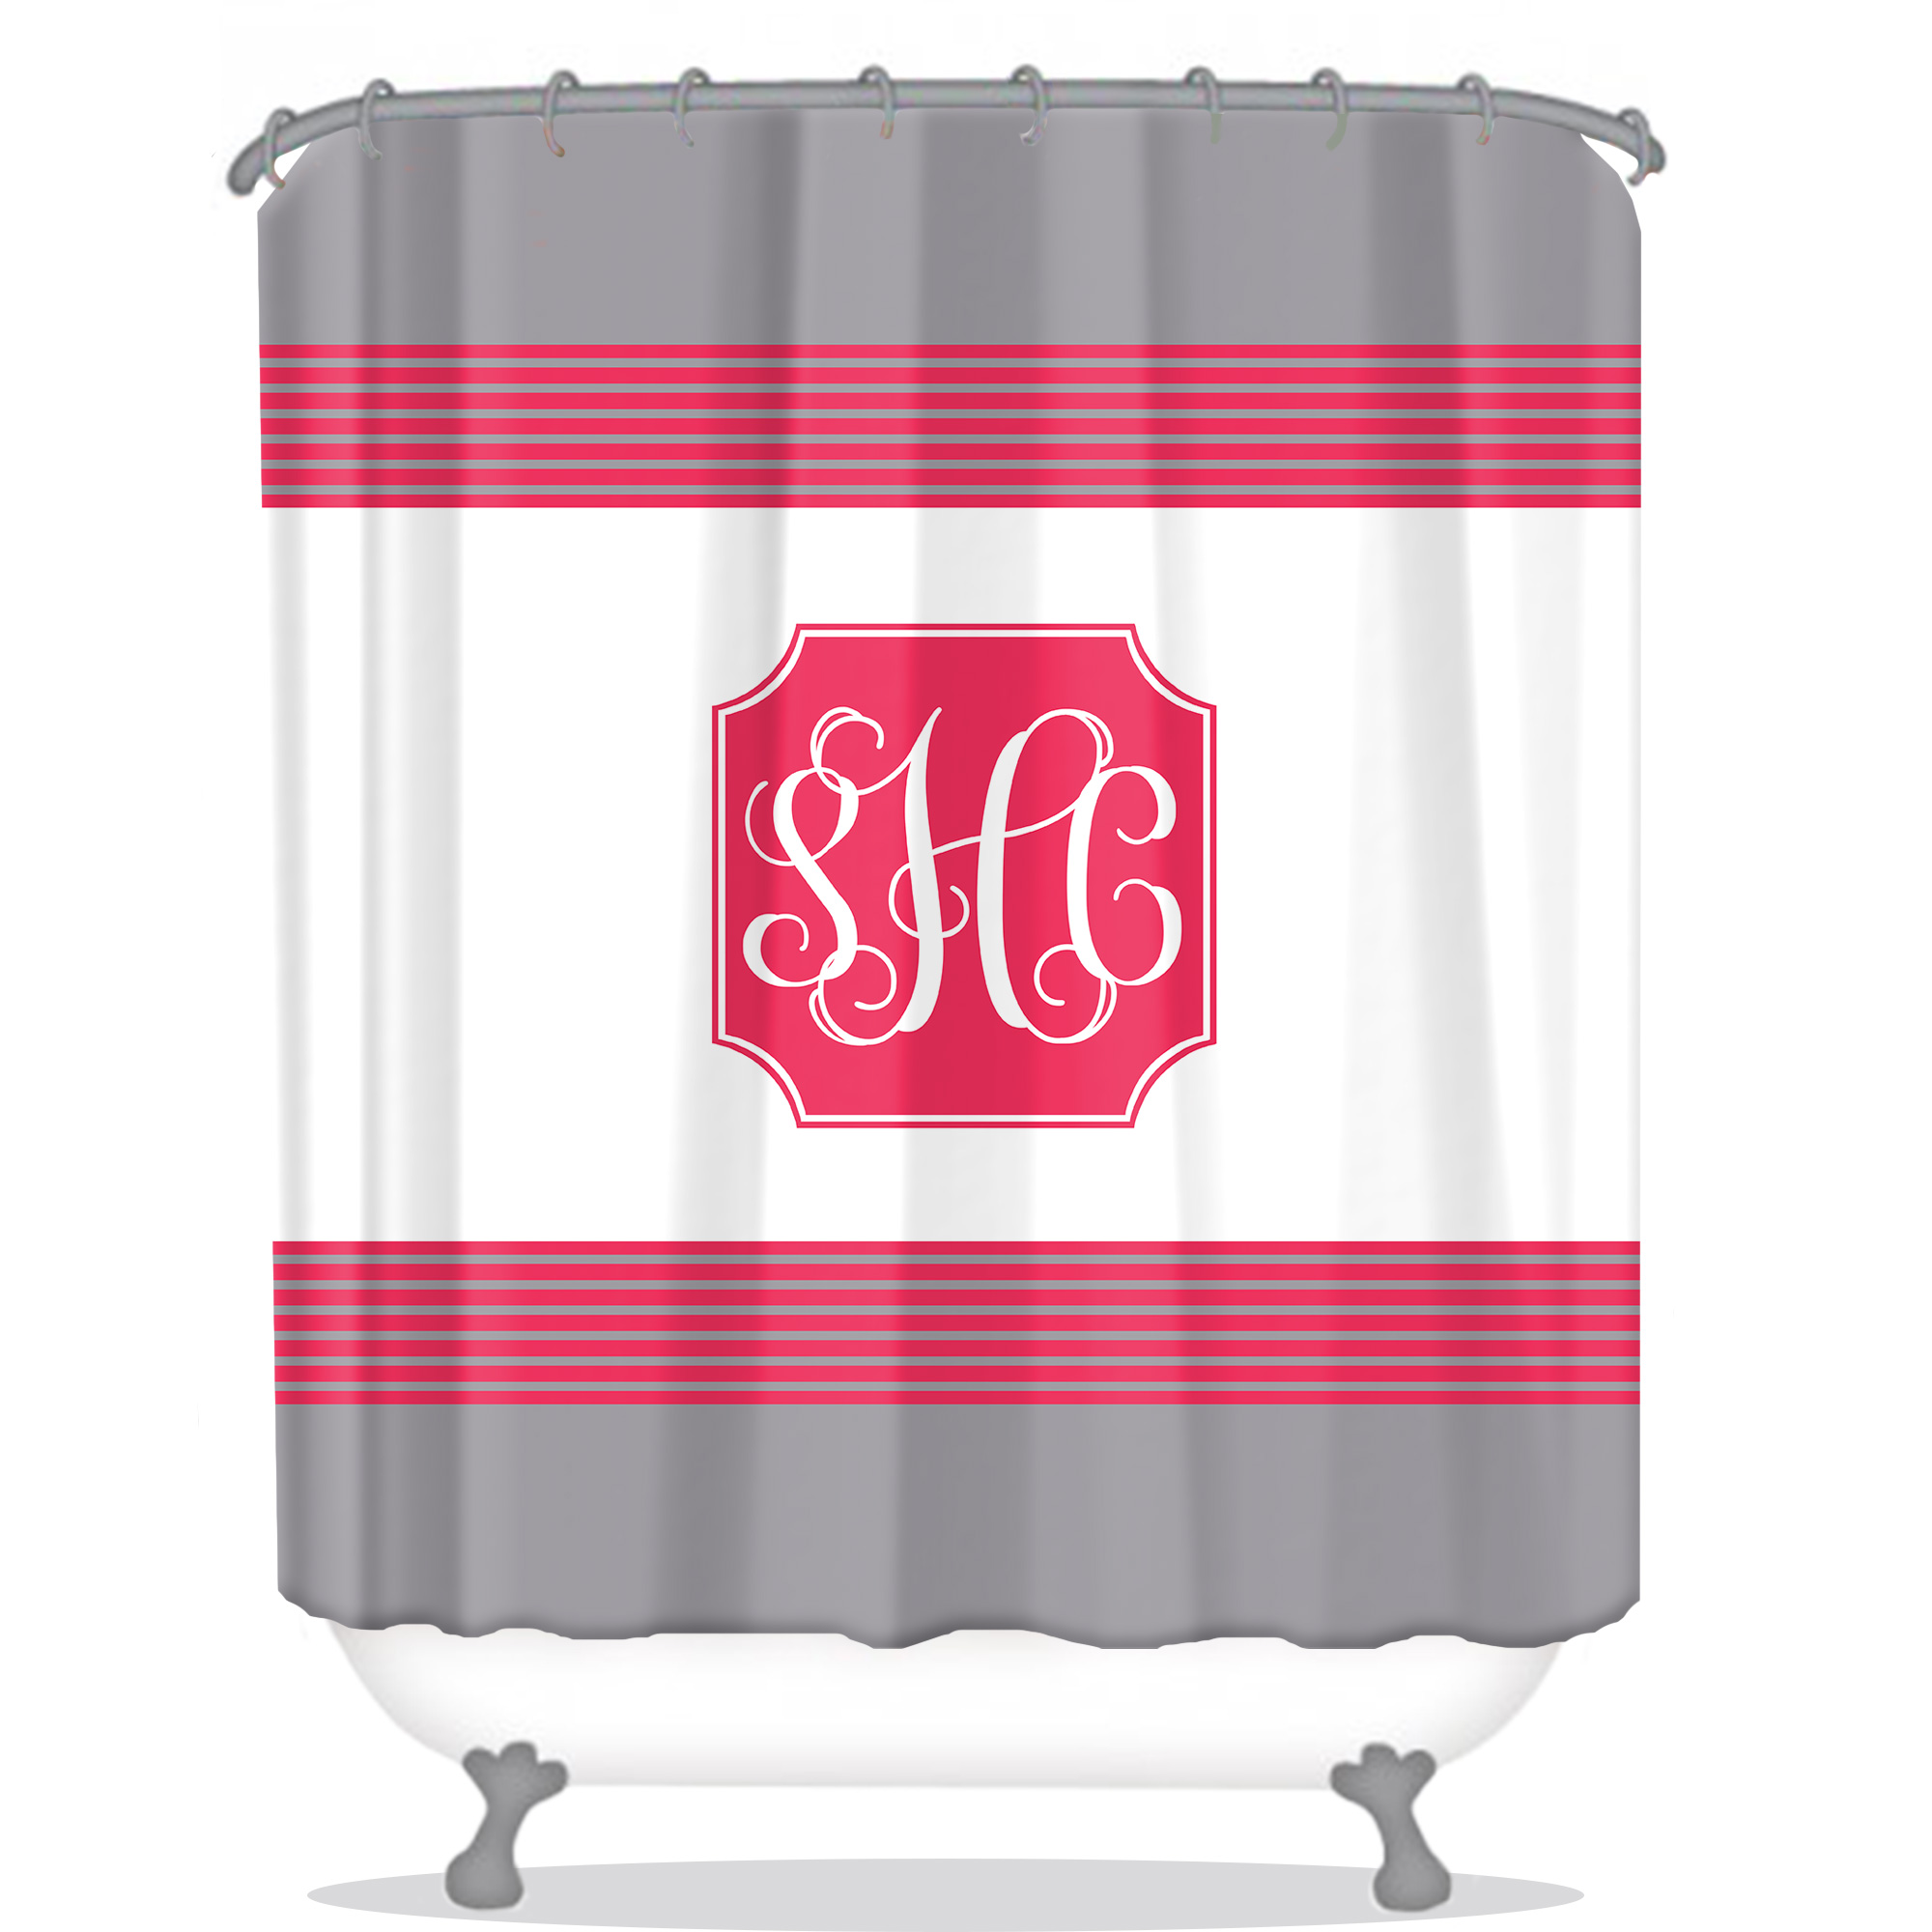 Modern Stylish Personalized Shower Curtain Monogrammed Shower Curtain Custom Shower Curtain